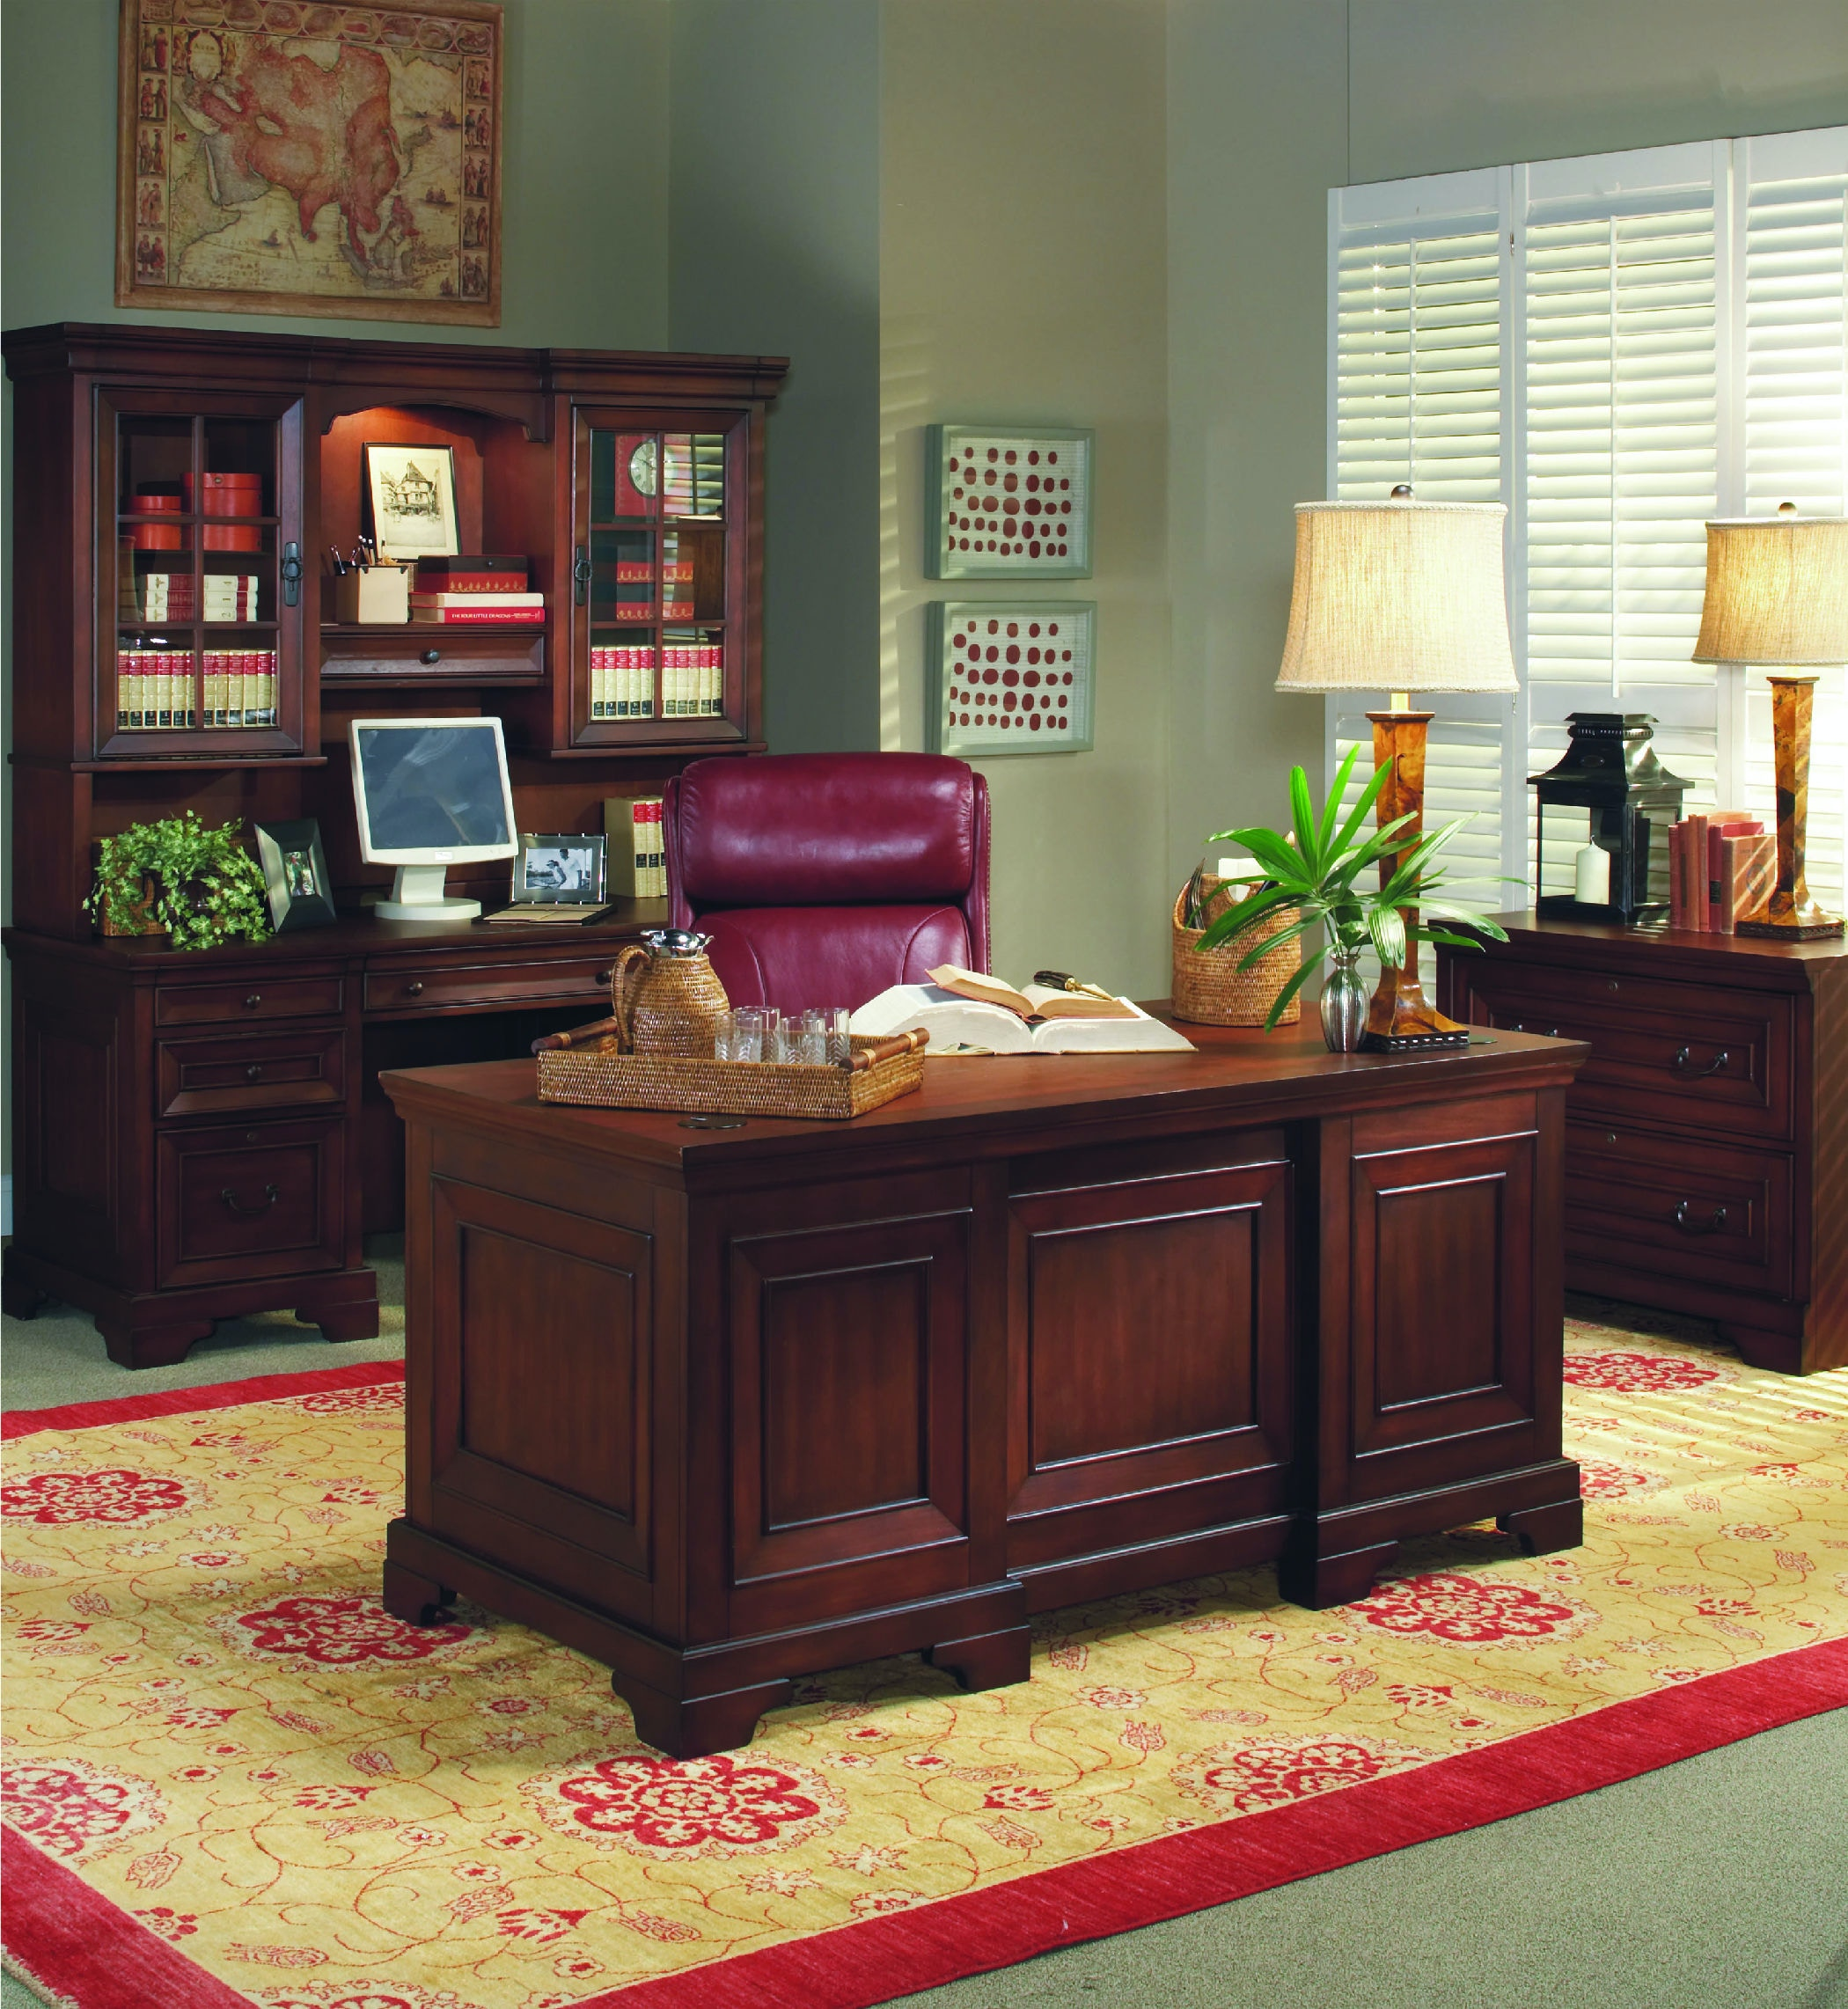 Homeworks Richmond Lateral File Cabinet HWI40331 From Walter E. Smithe  Furniture + Design